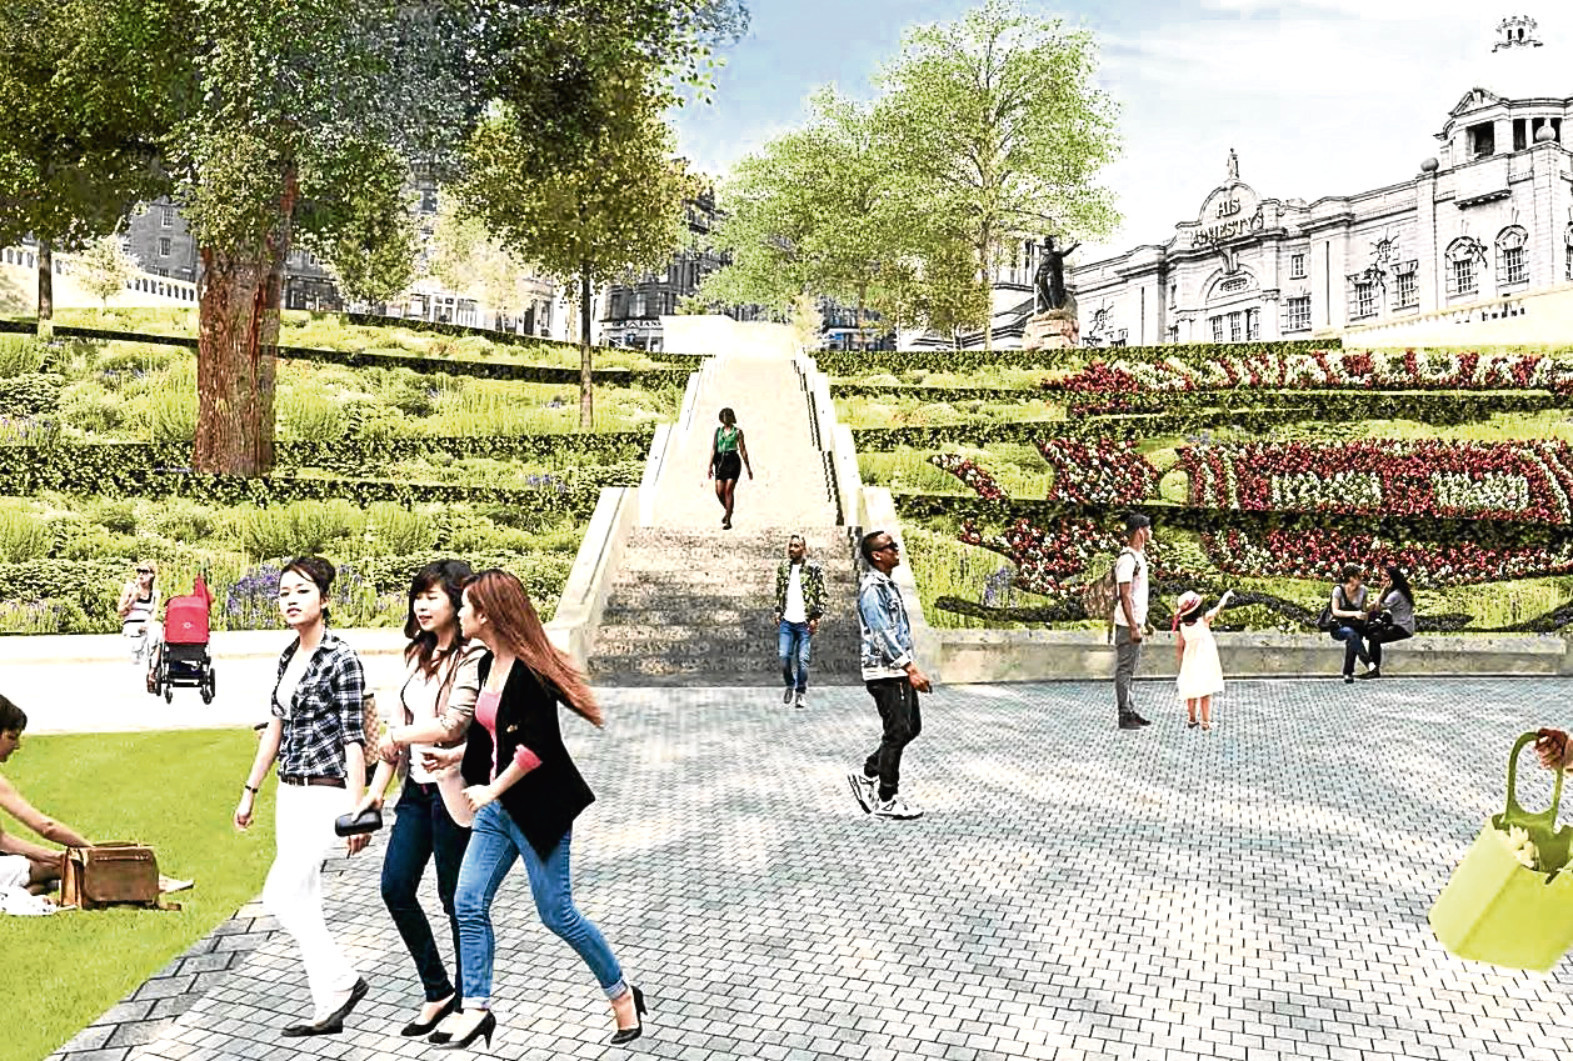 An artist impression of how Union Terrace Gardens could look